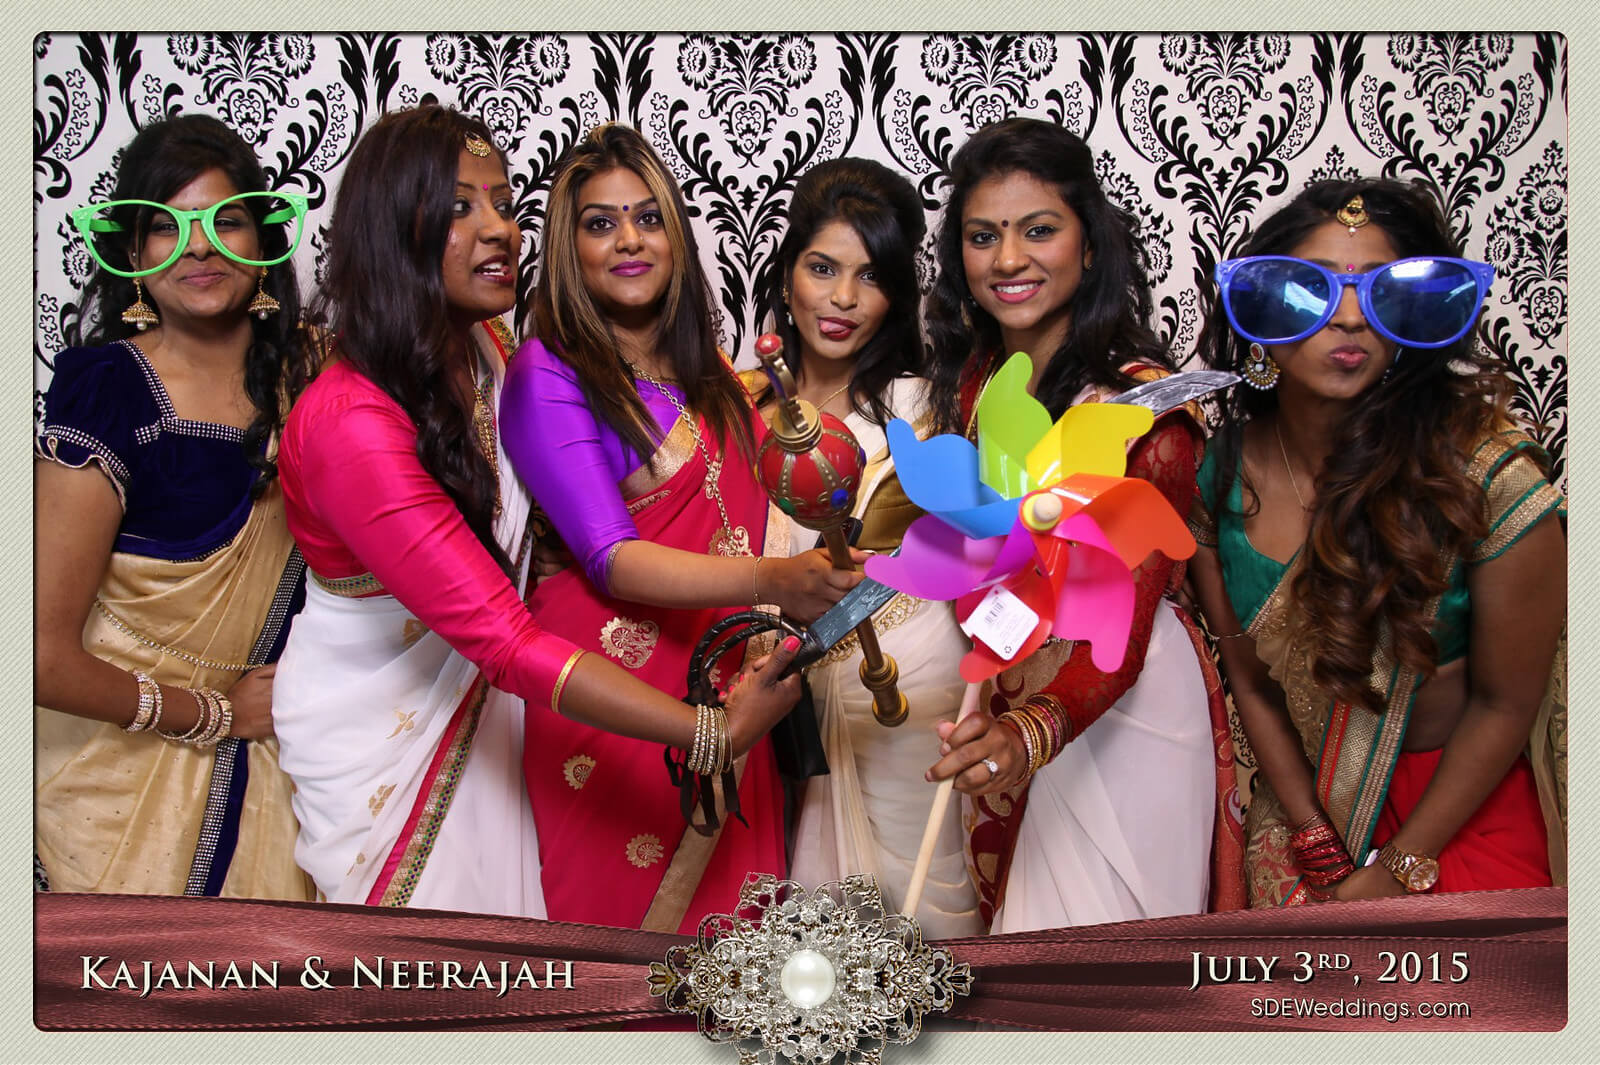 Toronto Scarborough Convention Centre Hindu Wedding Photo Booth Rental 6